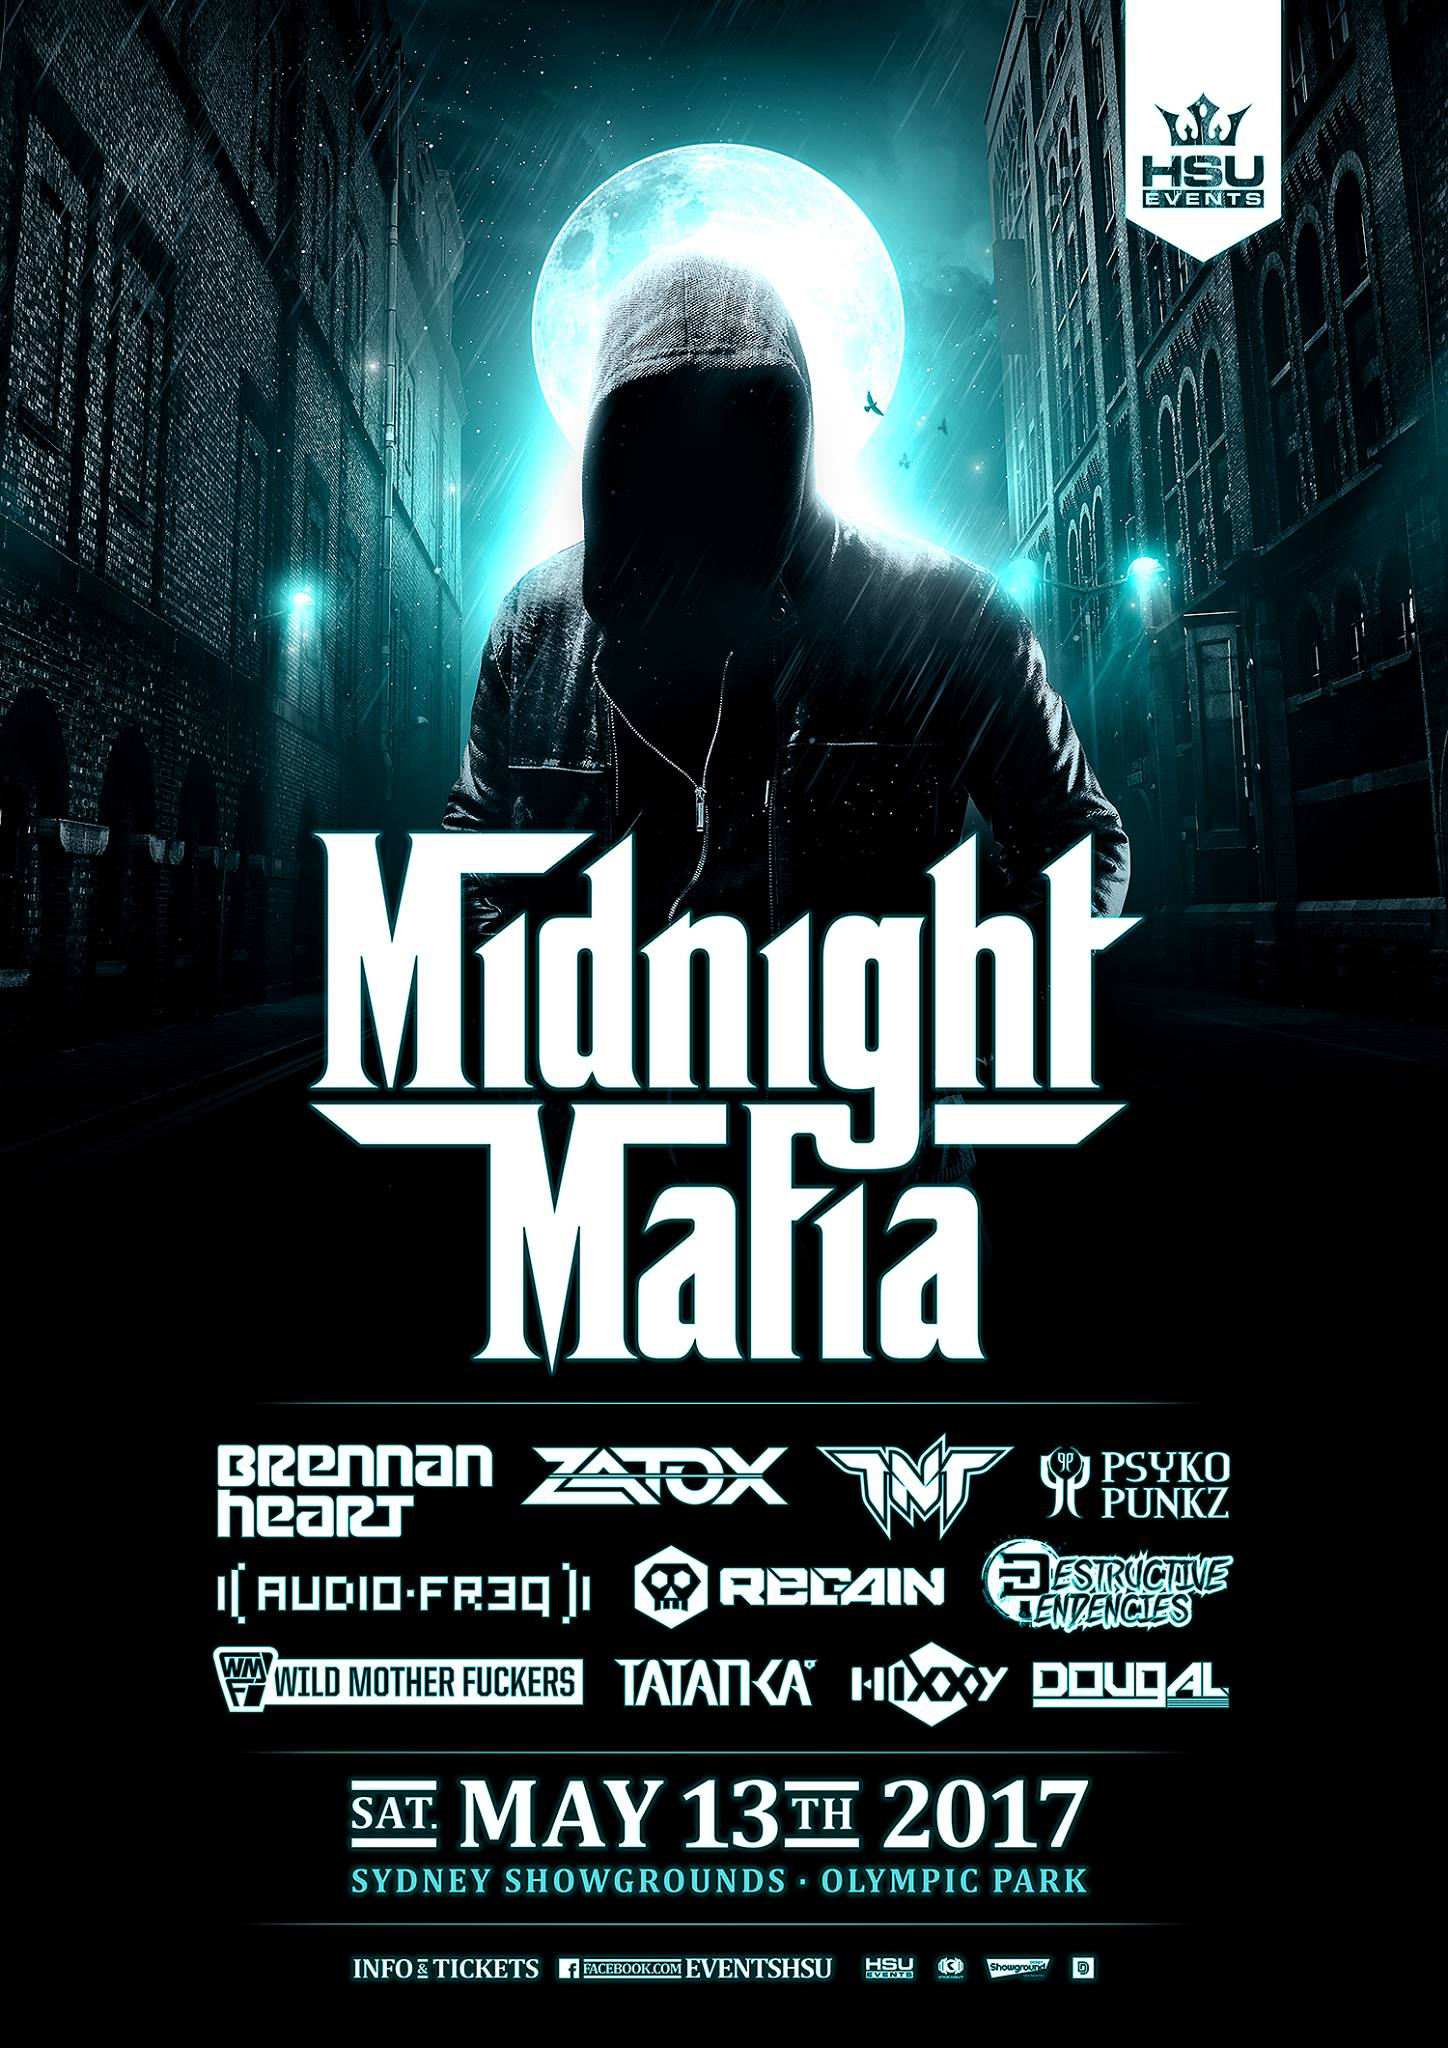 Tickets for Midnight Mafia 2017 in Sydney Olympic Park from Ticketbooth